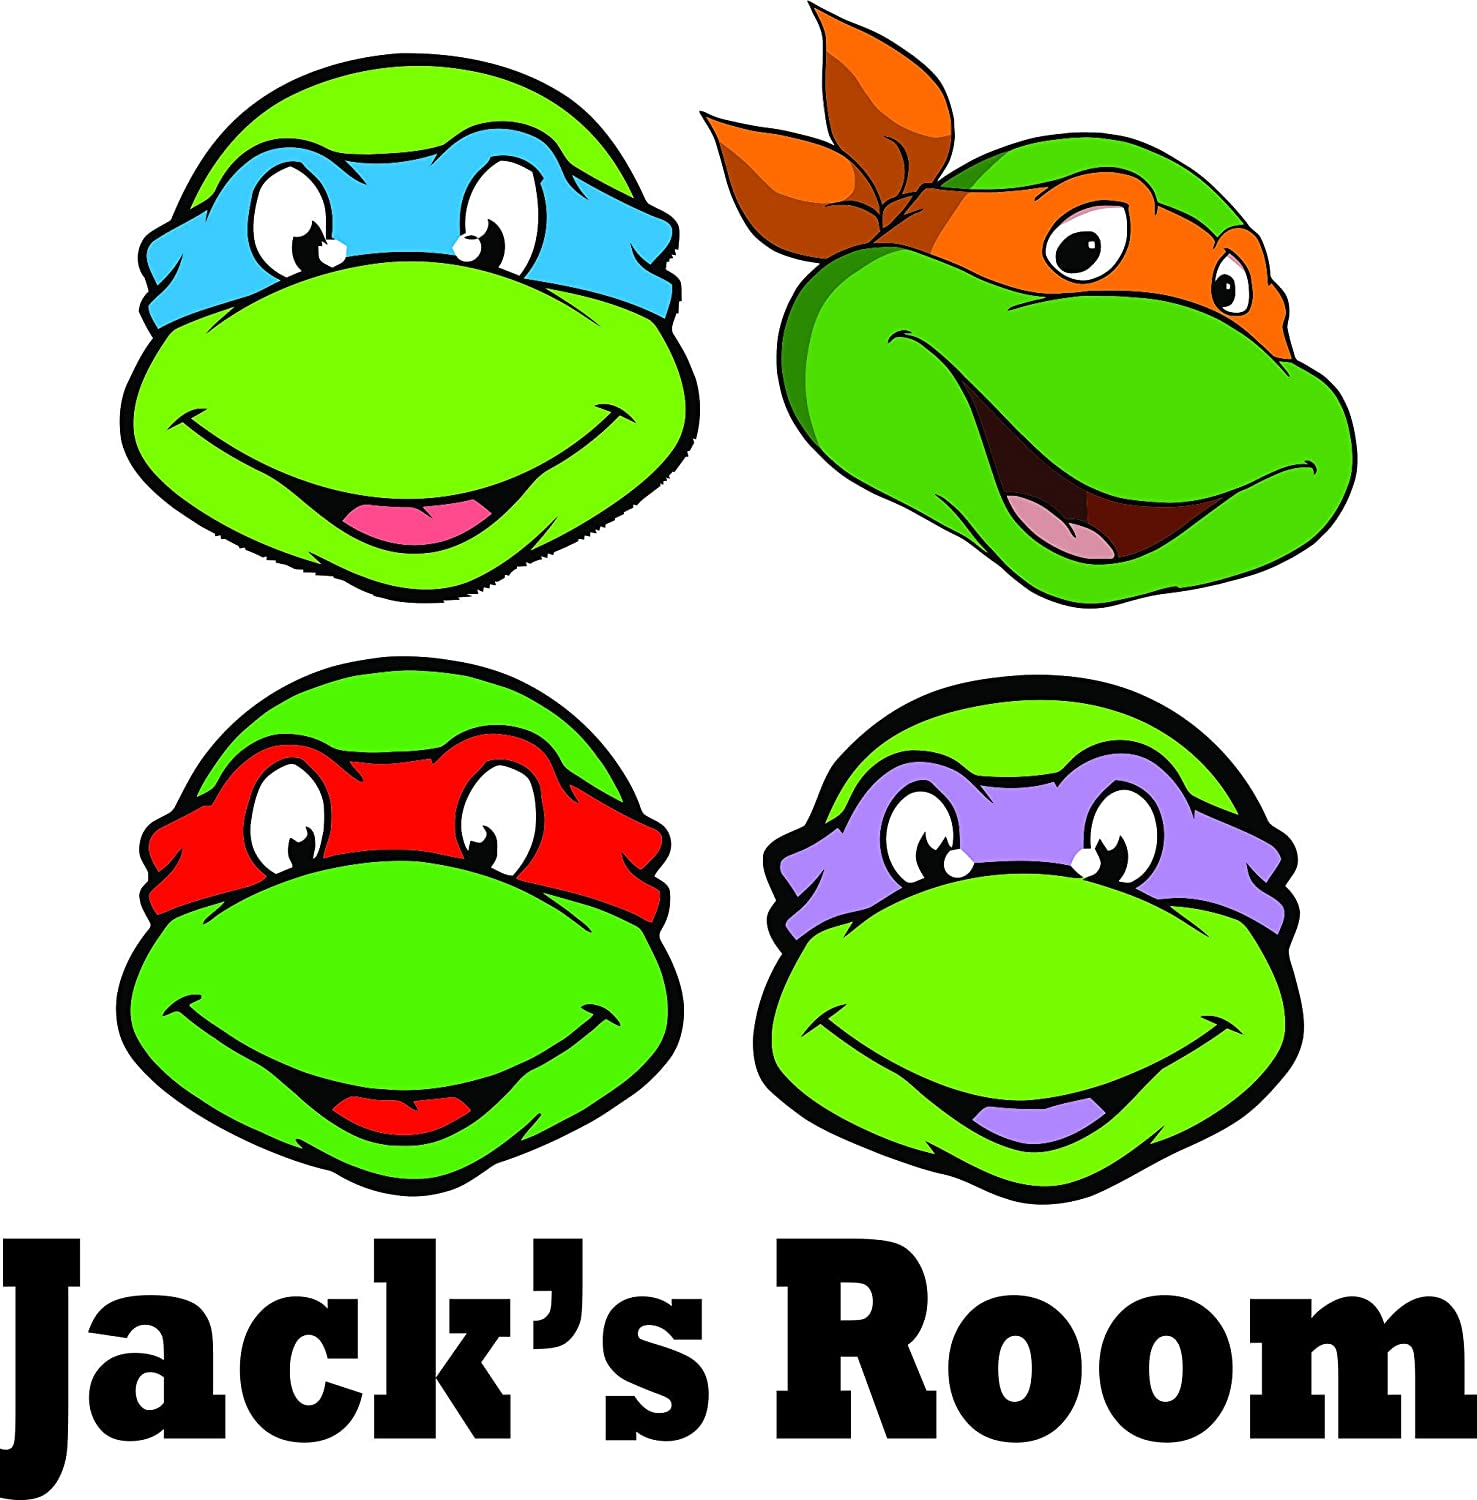 Amazon.com: Personalized Names Custom Name 4 Ninja Turtles ...